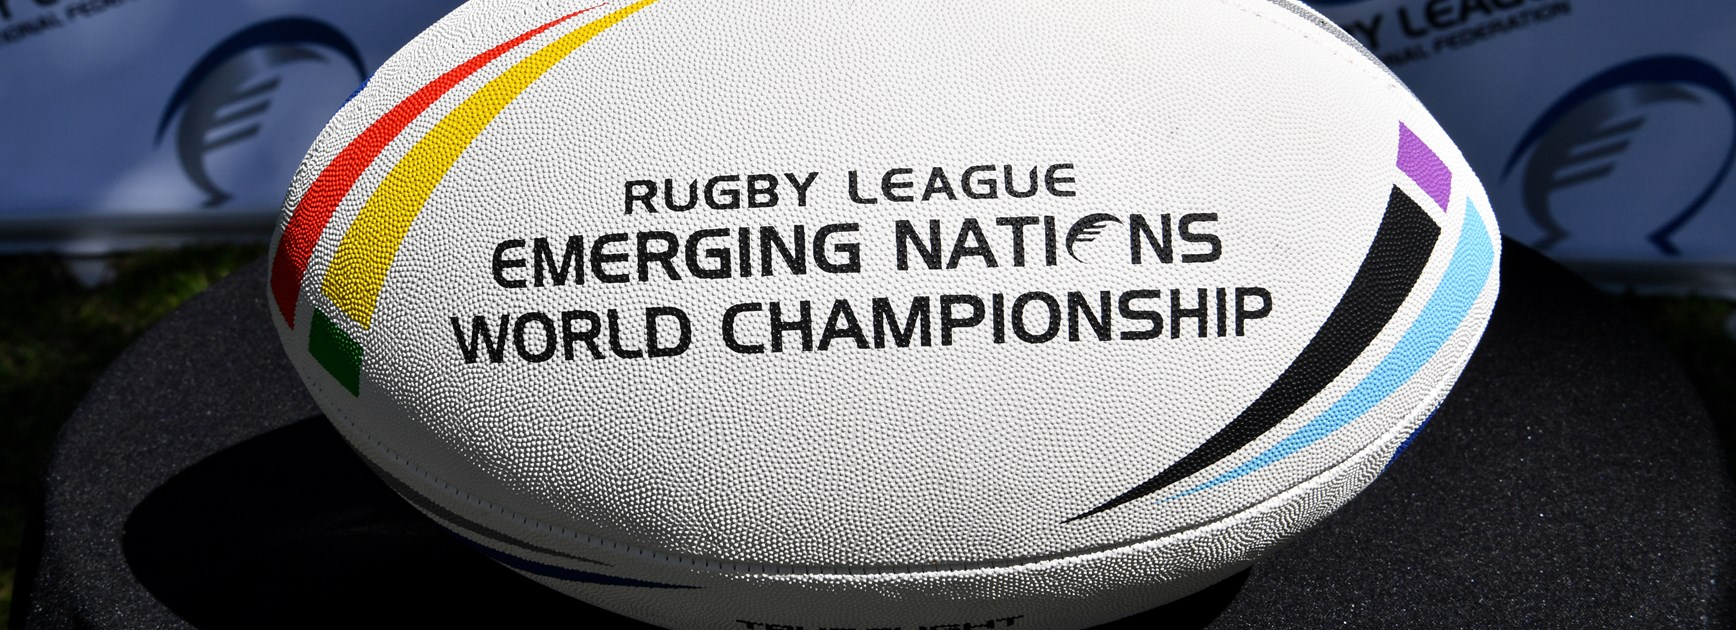 Malta win at Rugby League Emerging Nations World Championship